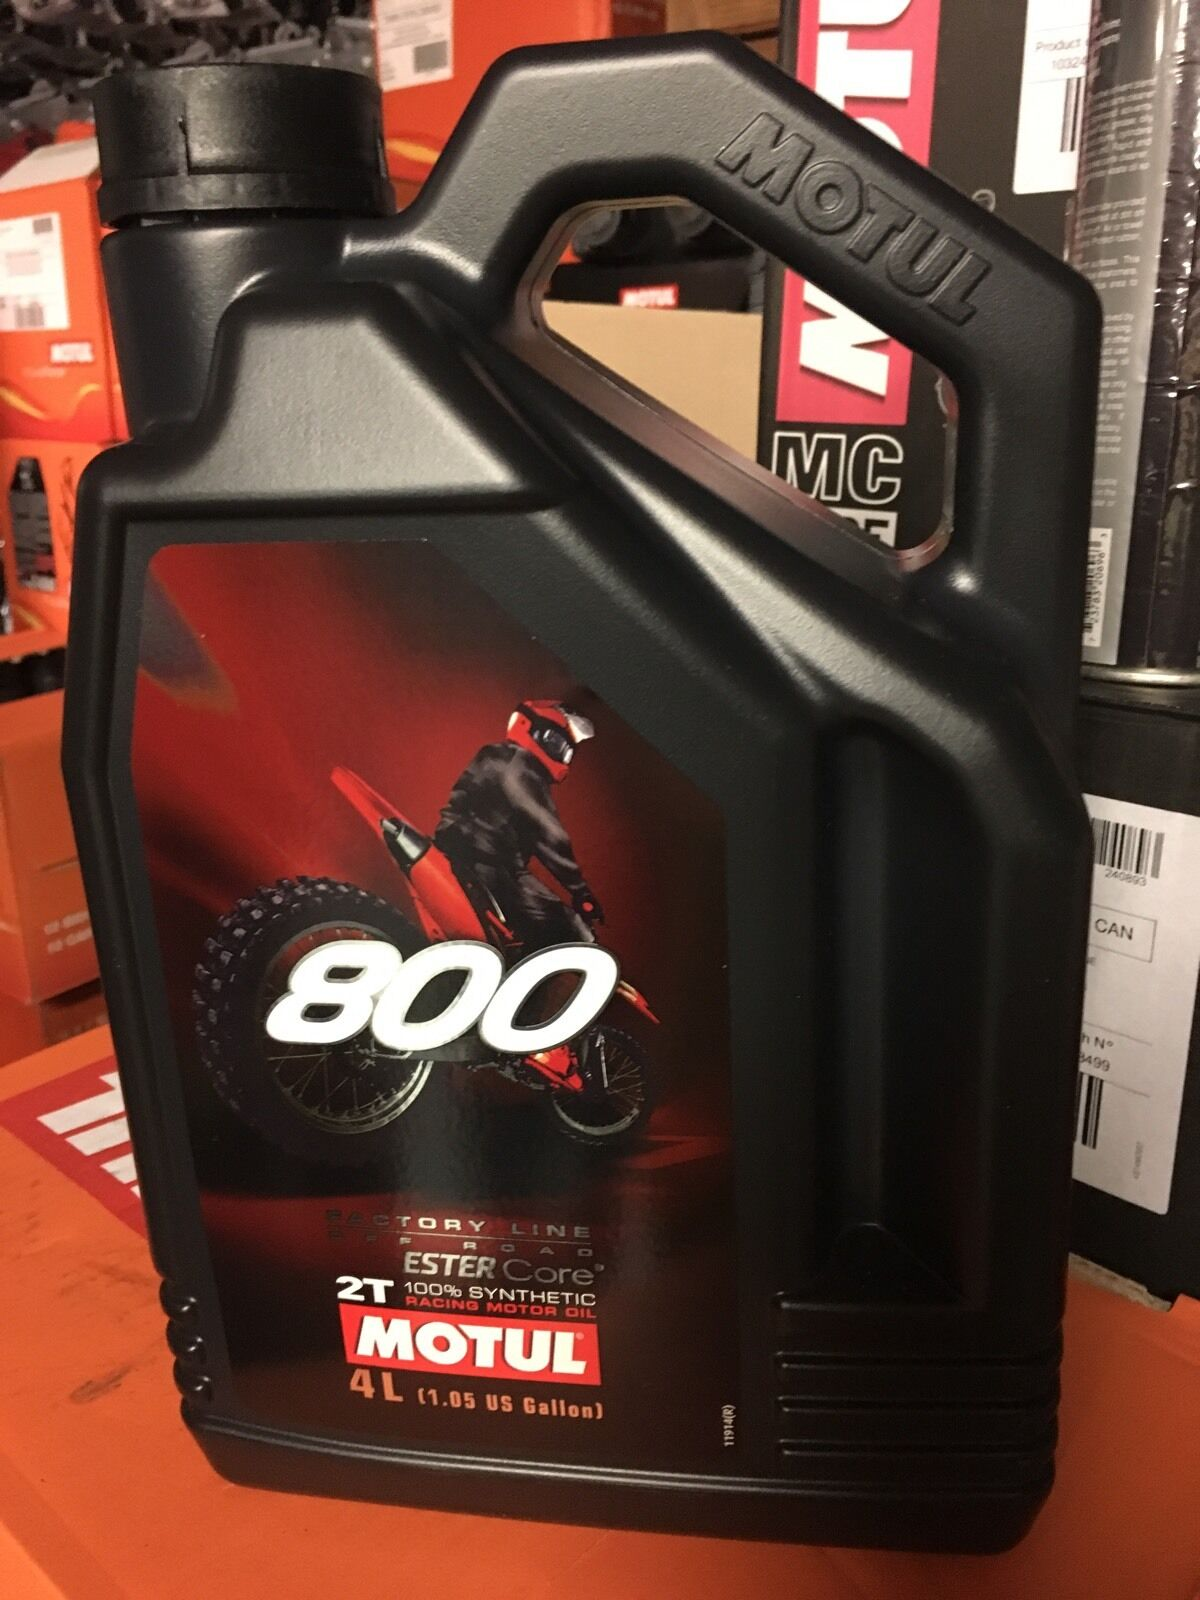 MOTUL 800 2T FACTORY LINE OFF ROAD 2 stroke 1  GALLON BOTTLE FULL SYNTHETIC